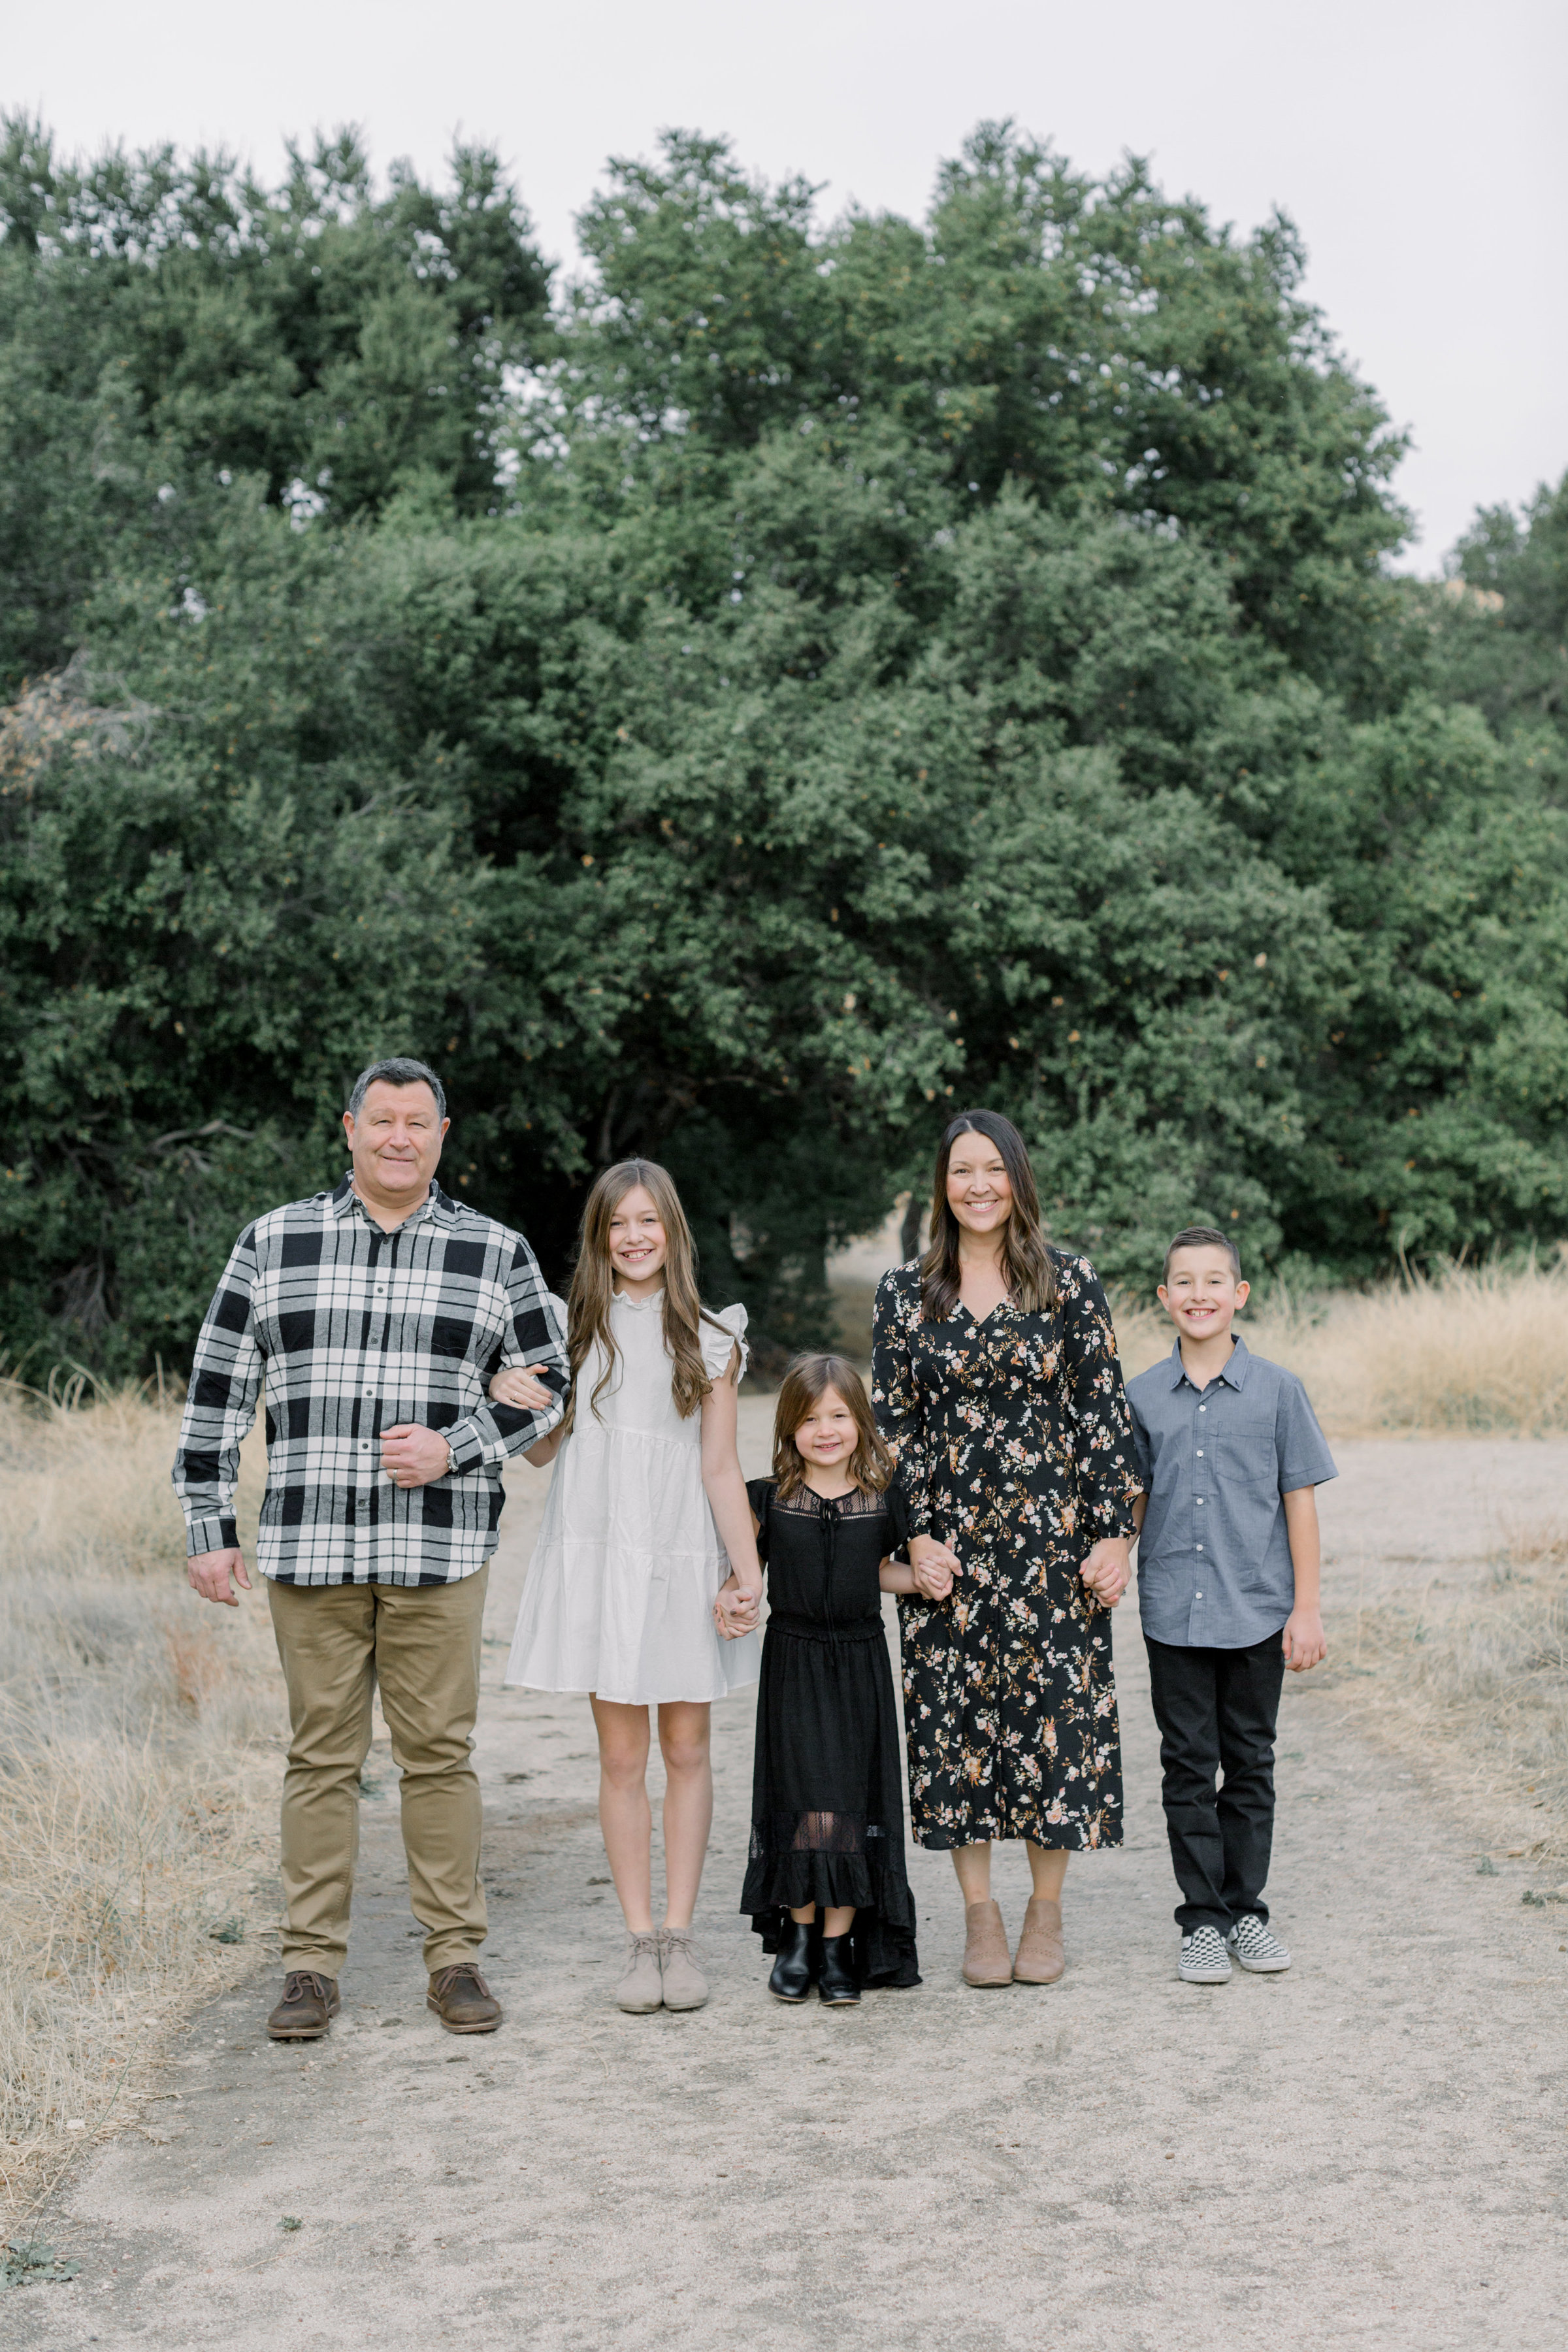 frieders family fall 2019  (13 of 16)